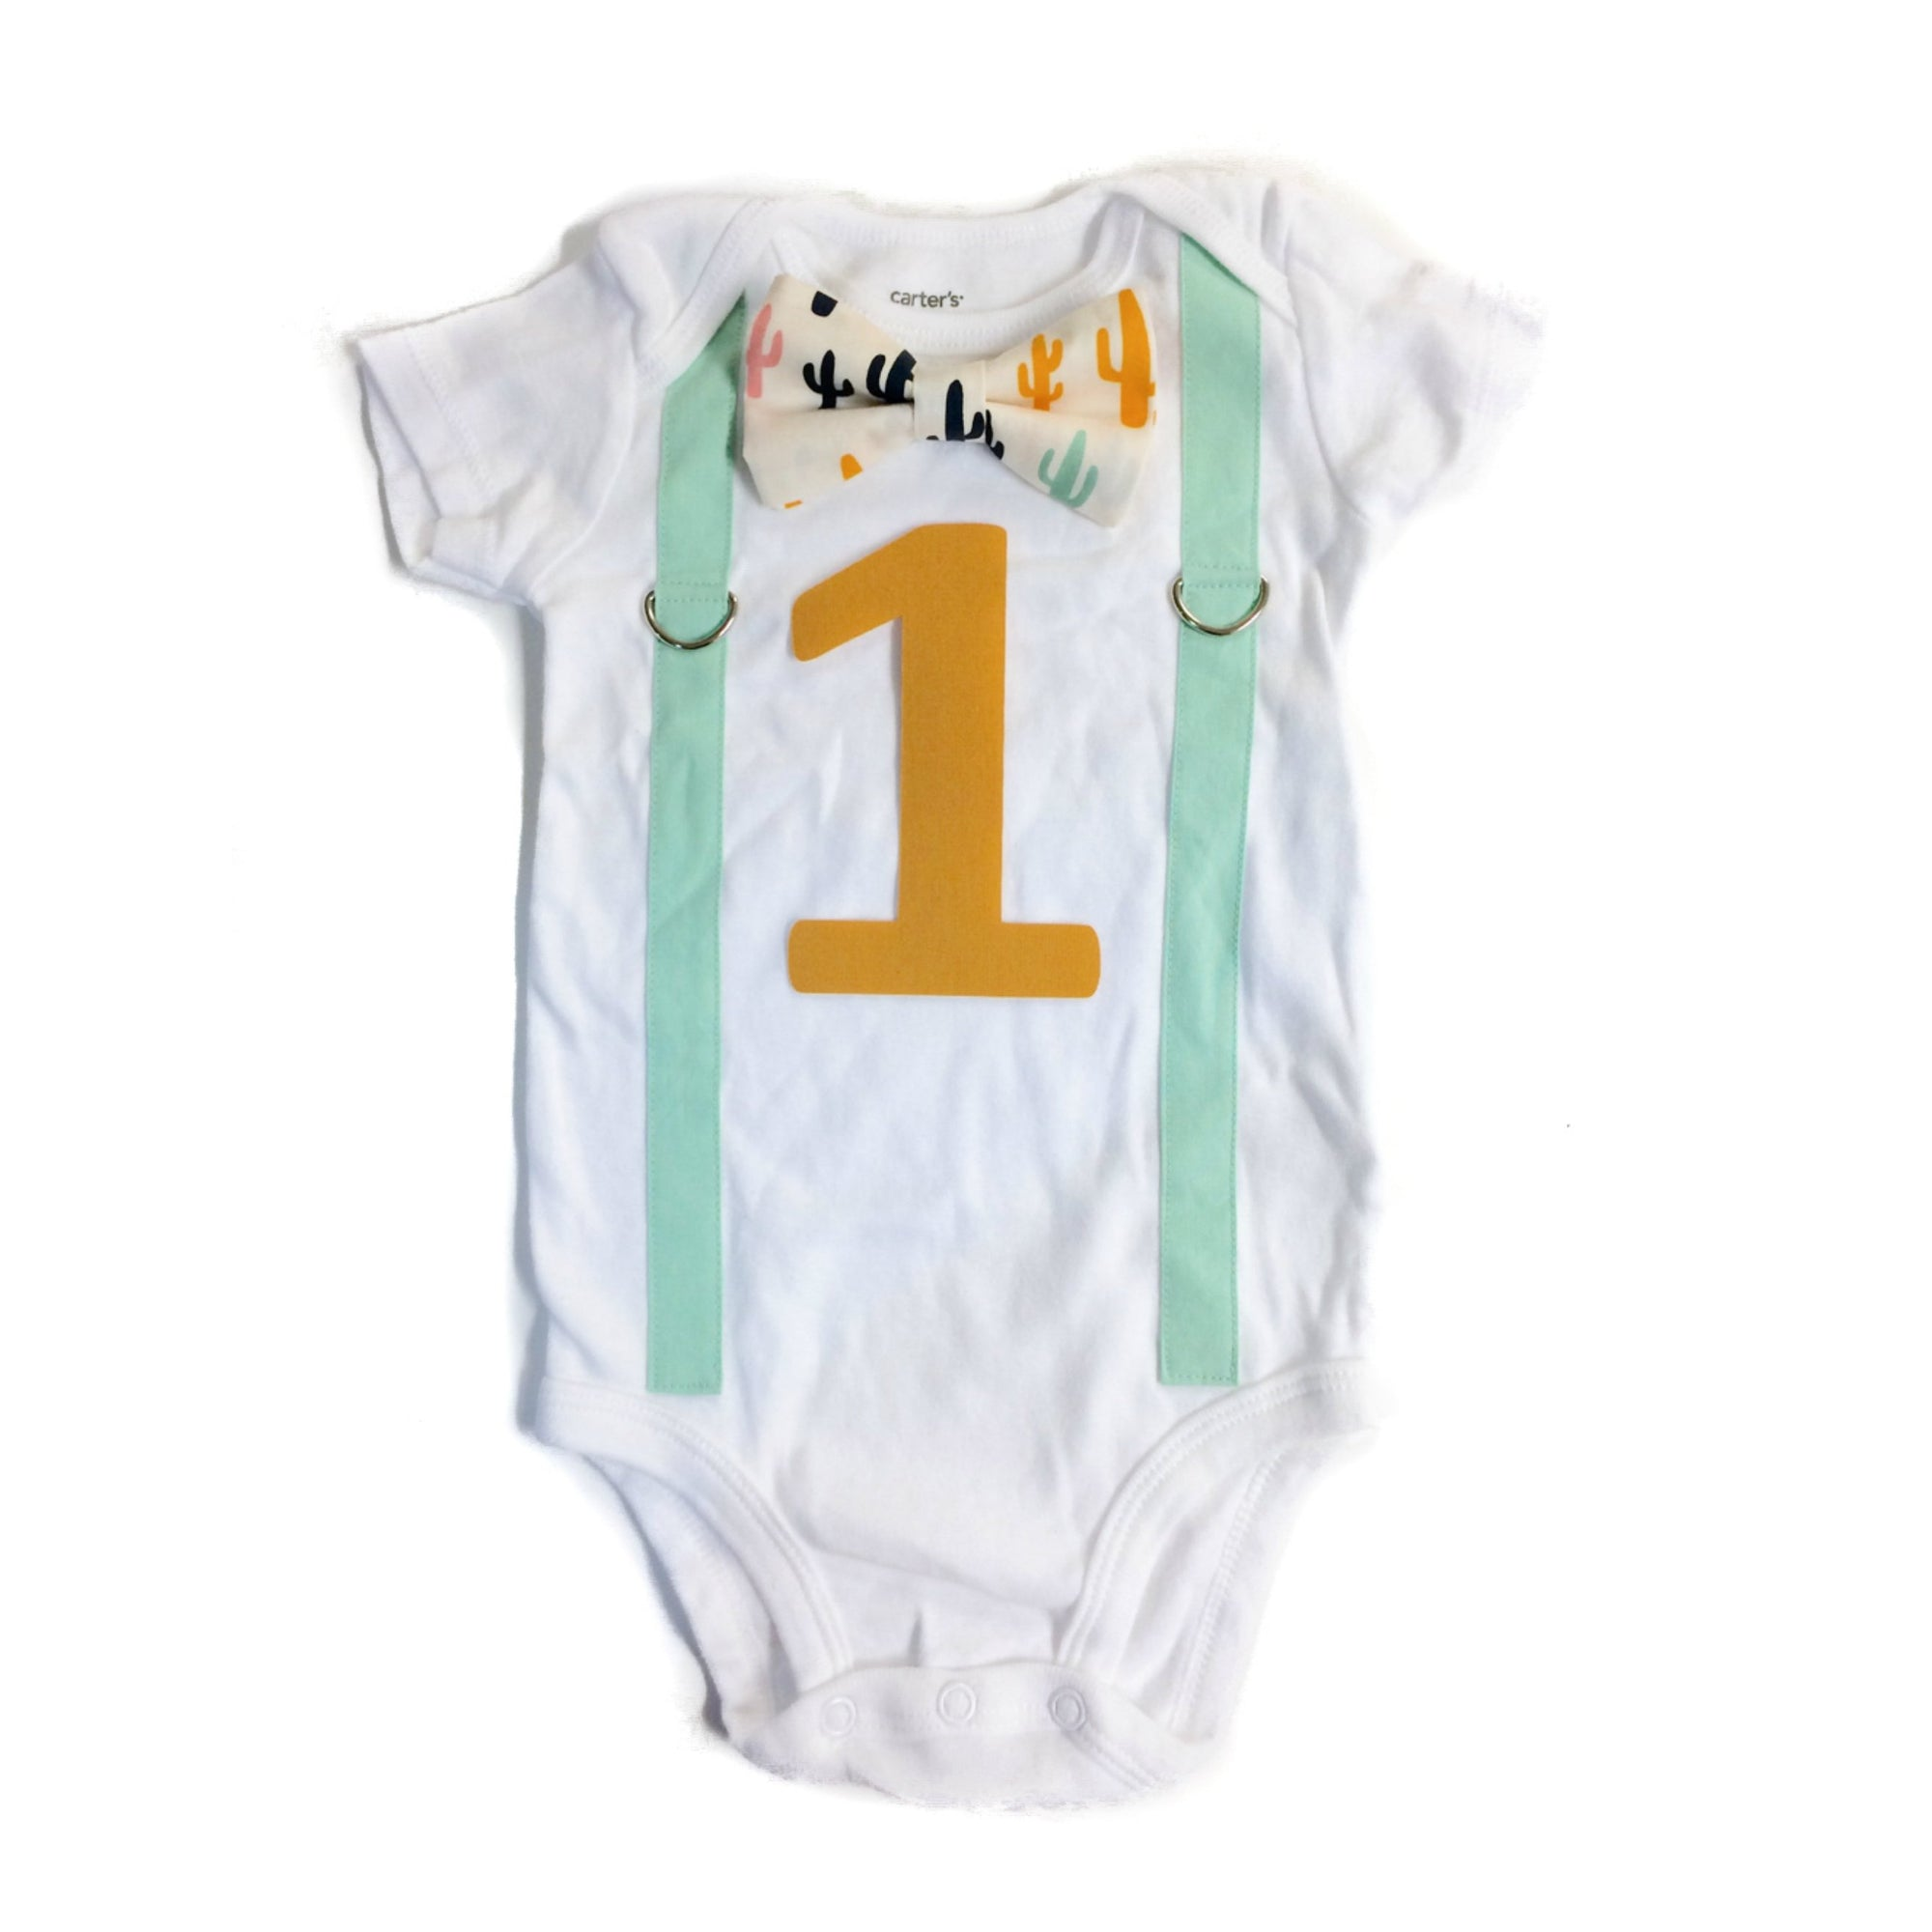 Cuddle Sleep Dream Oh Snap Cactus 1st Birthday Onesie